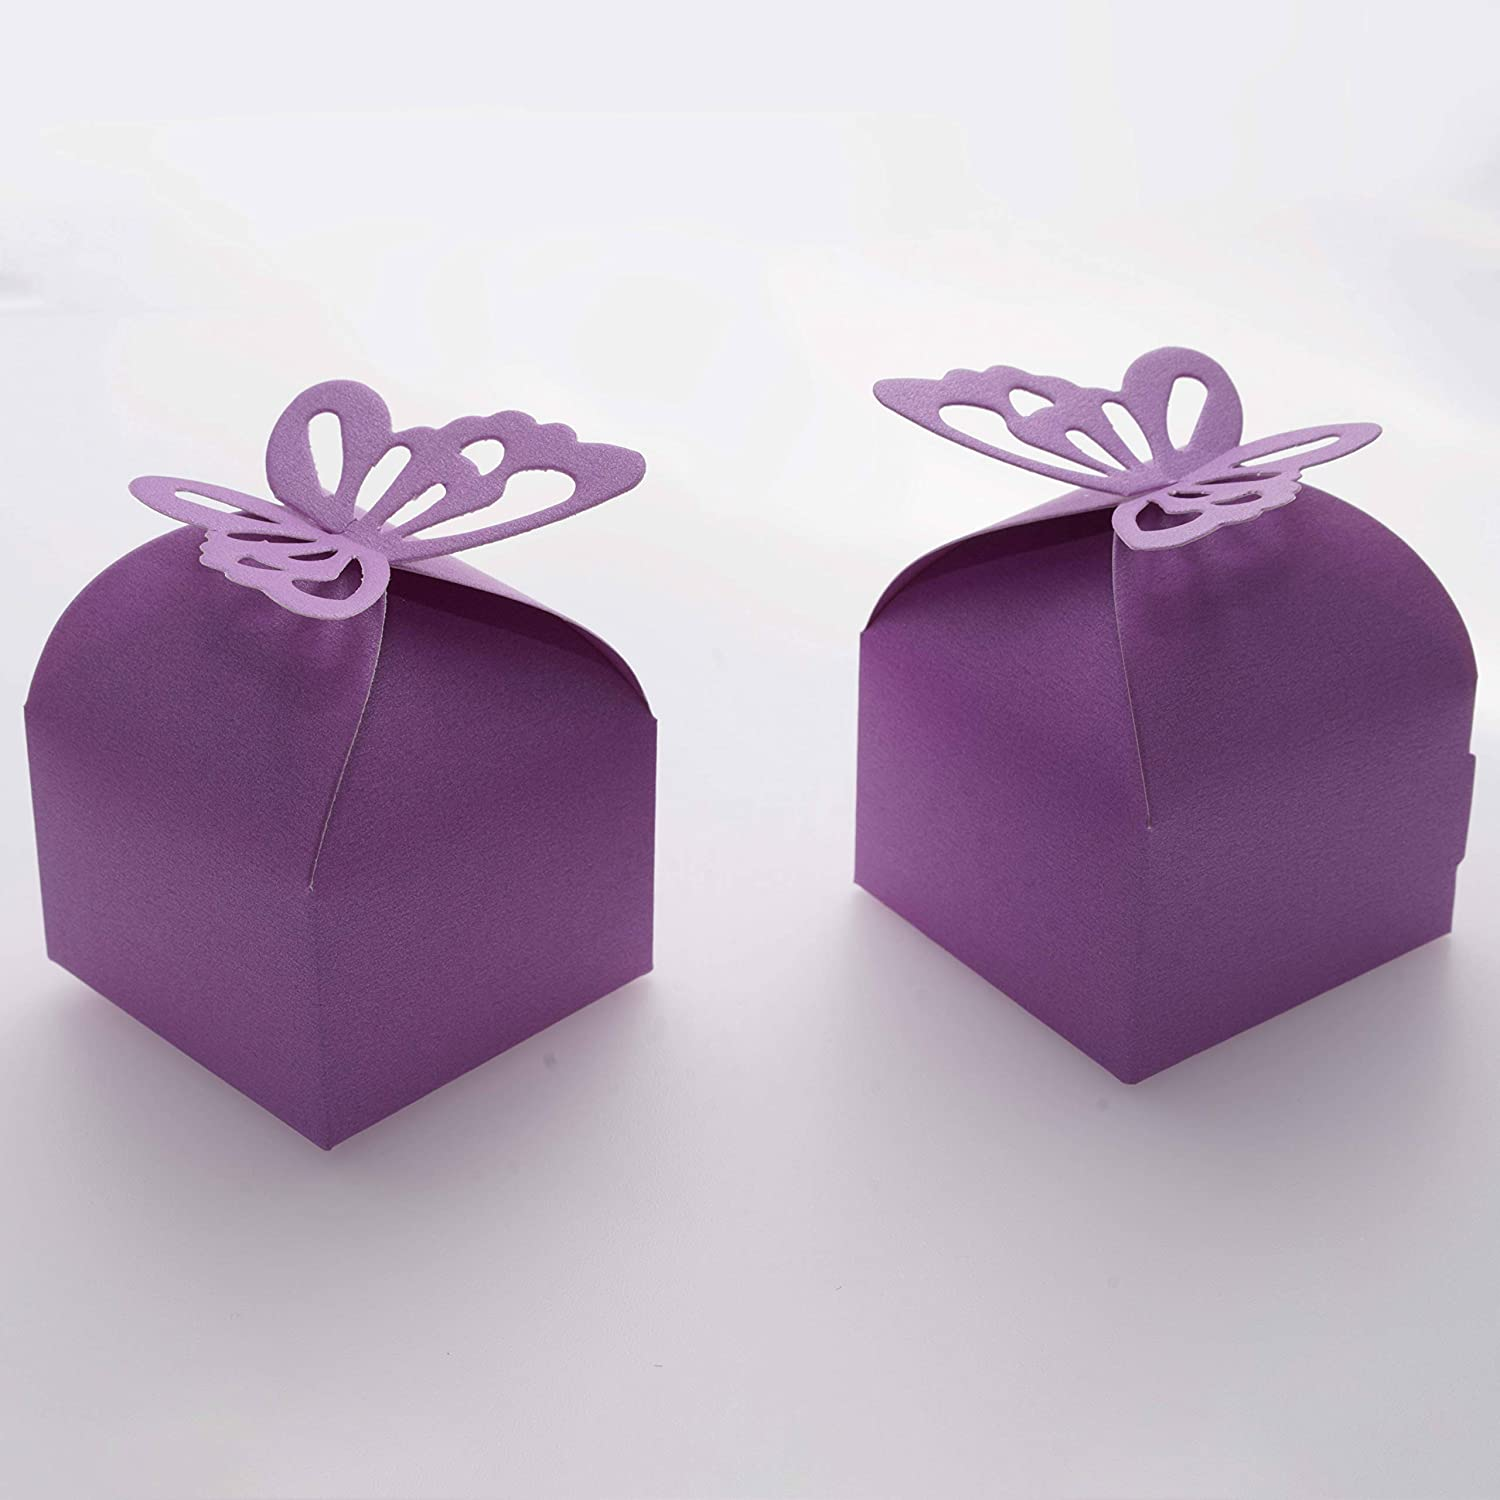 Wedding Favor Boxes Gifts Kraft Brown Boxes Purple Watercolor Flowers Set of 12 Personalized Treat Containers with Stickers for Favors